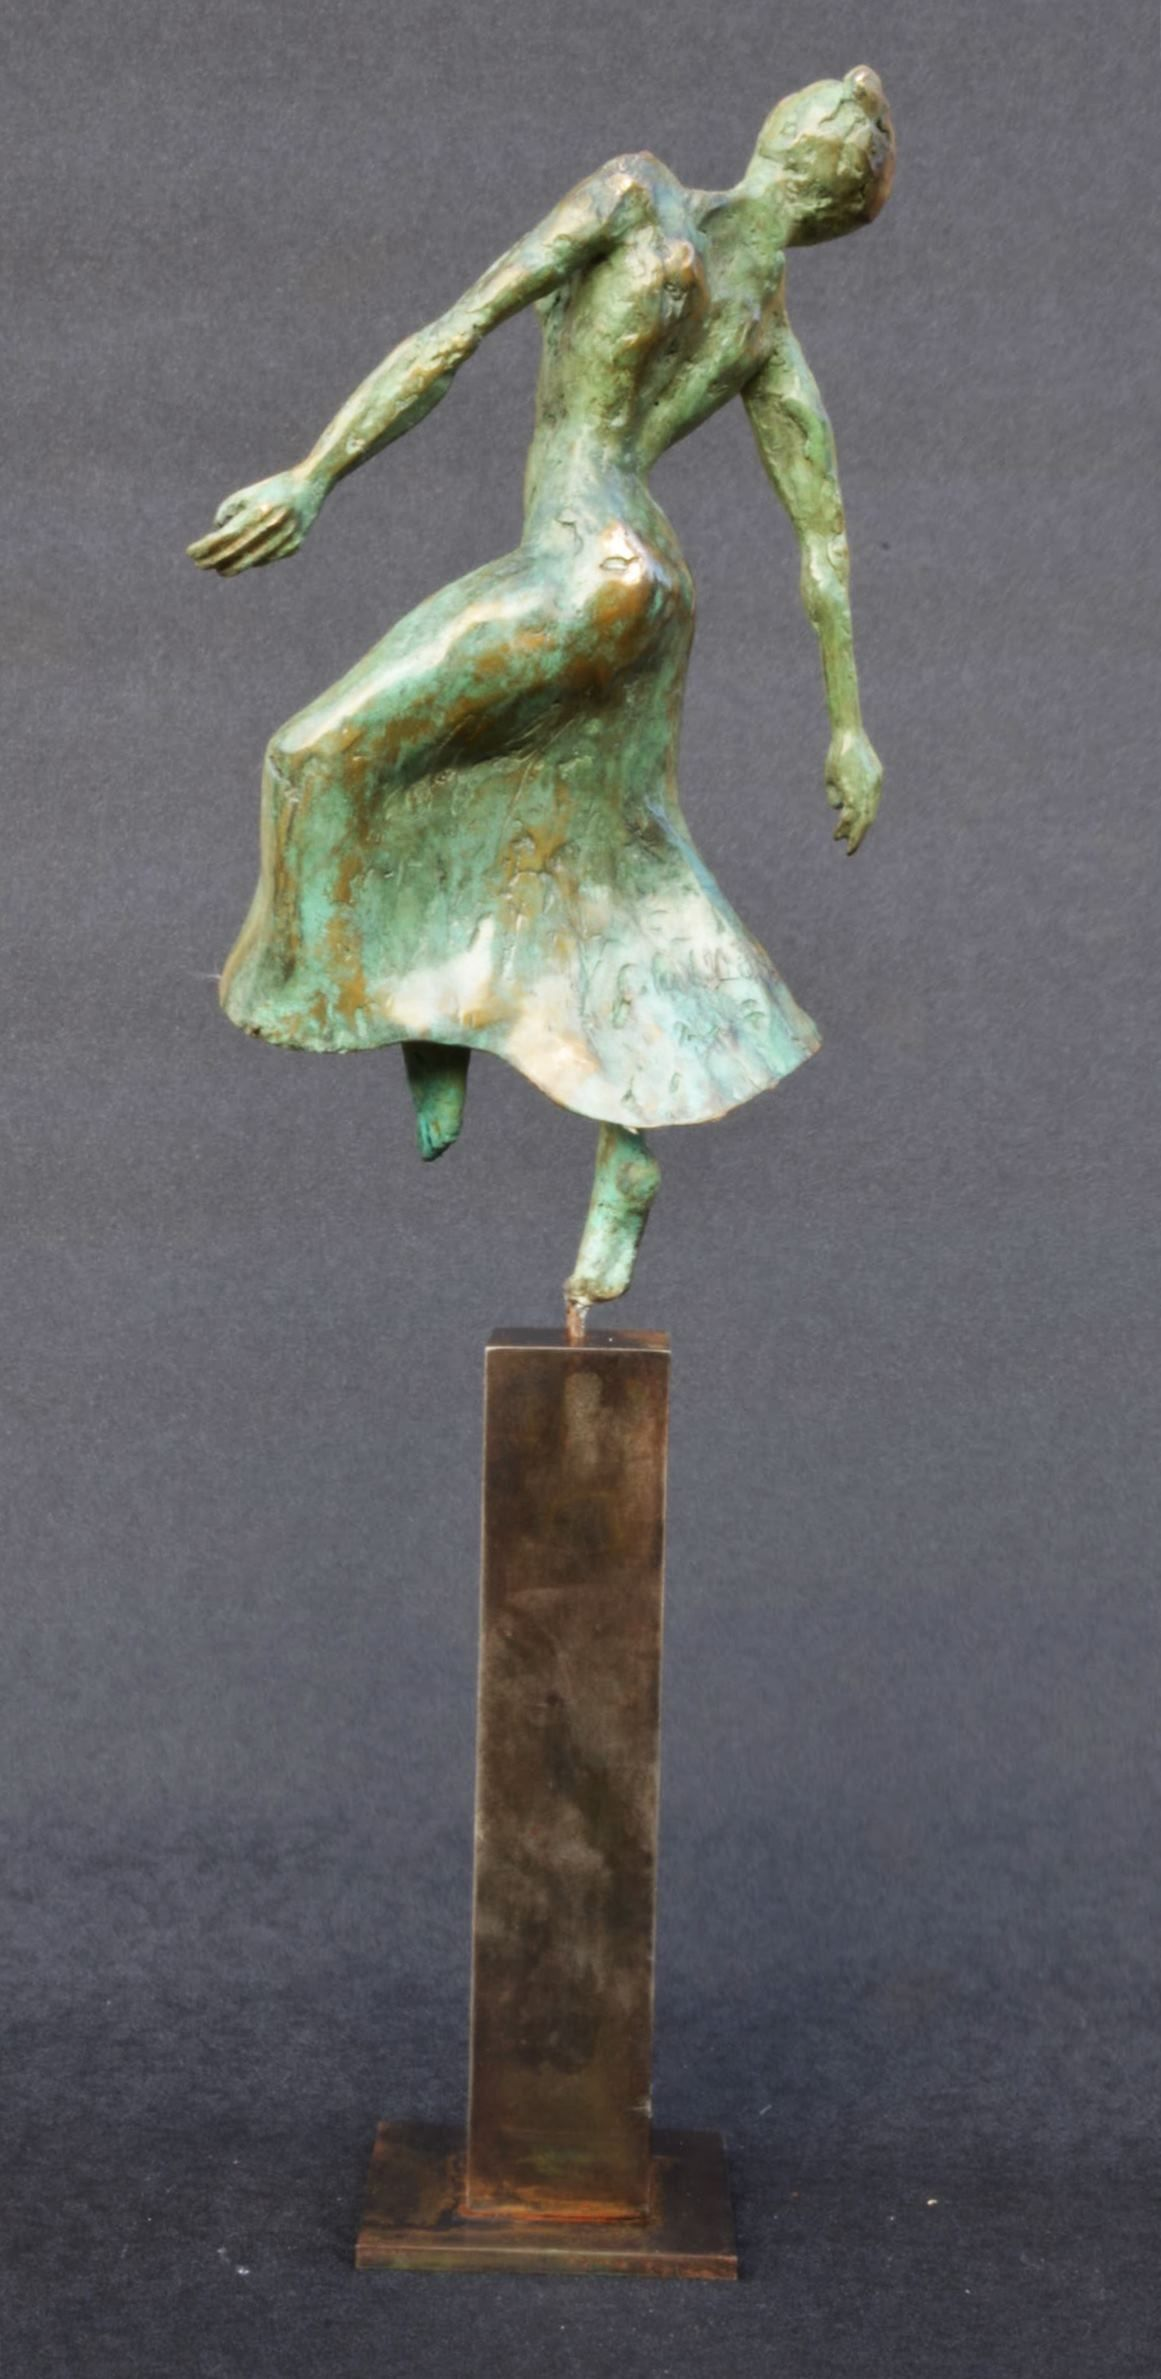 Modern dancer II,Yann Guillon,Sculpture